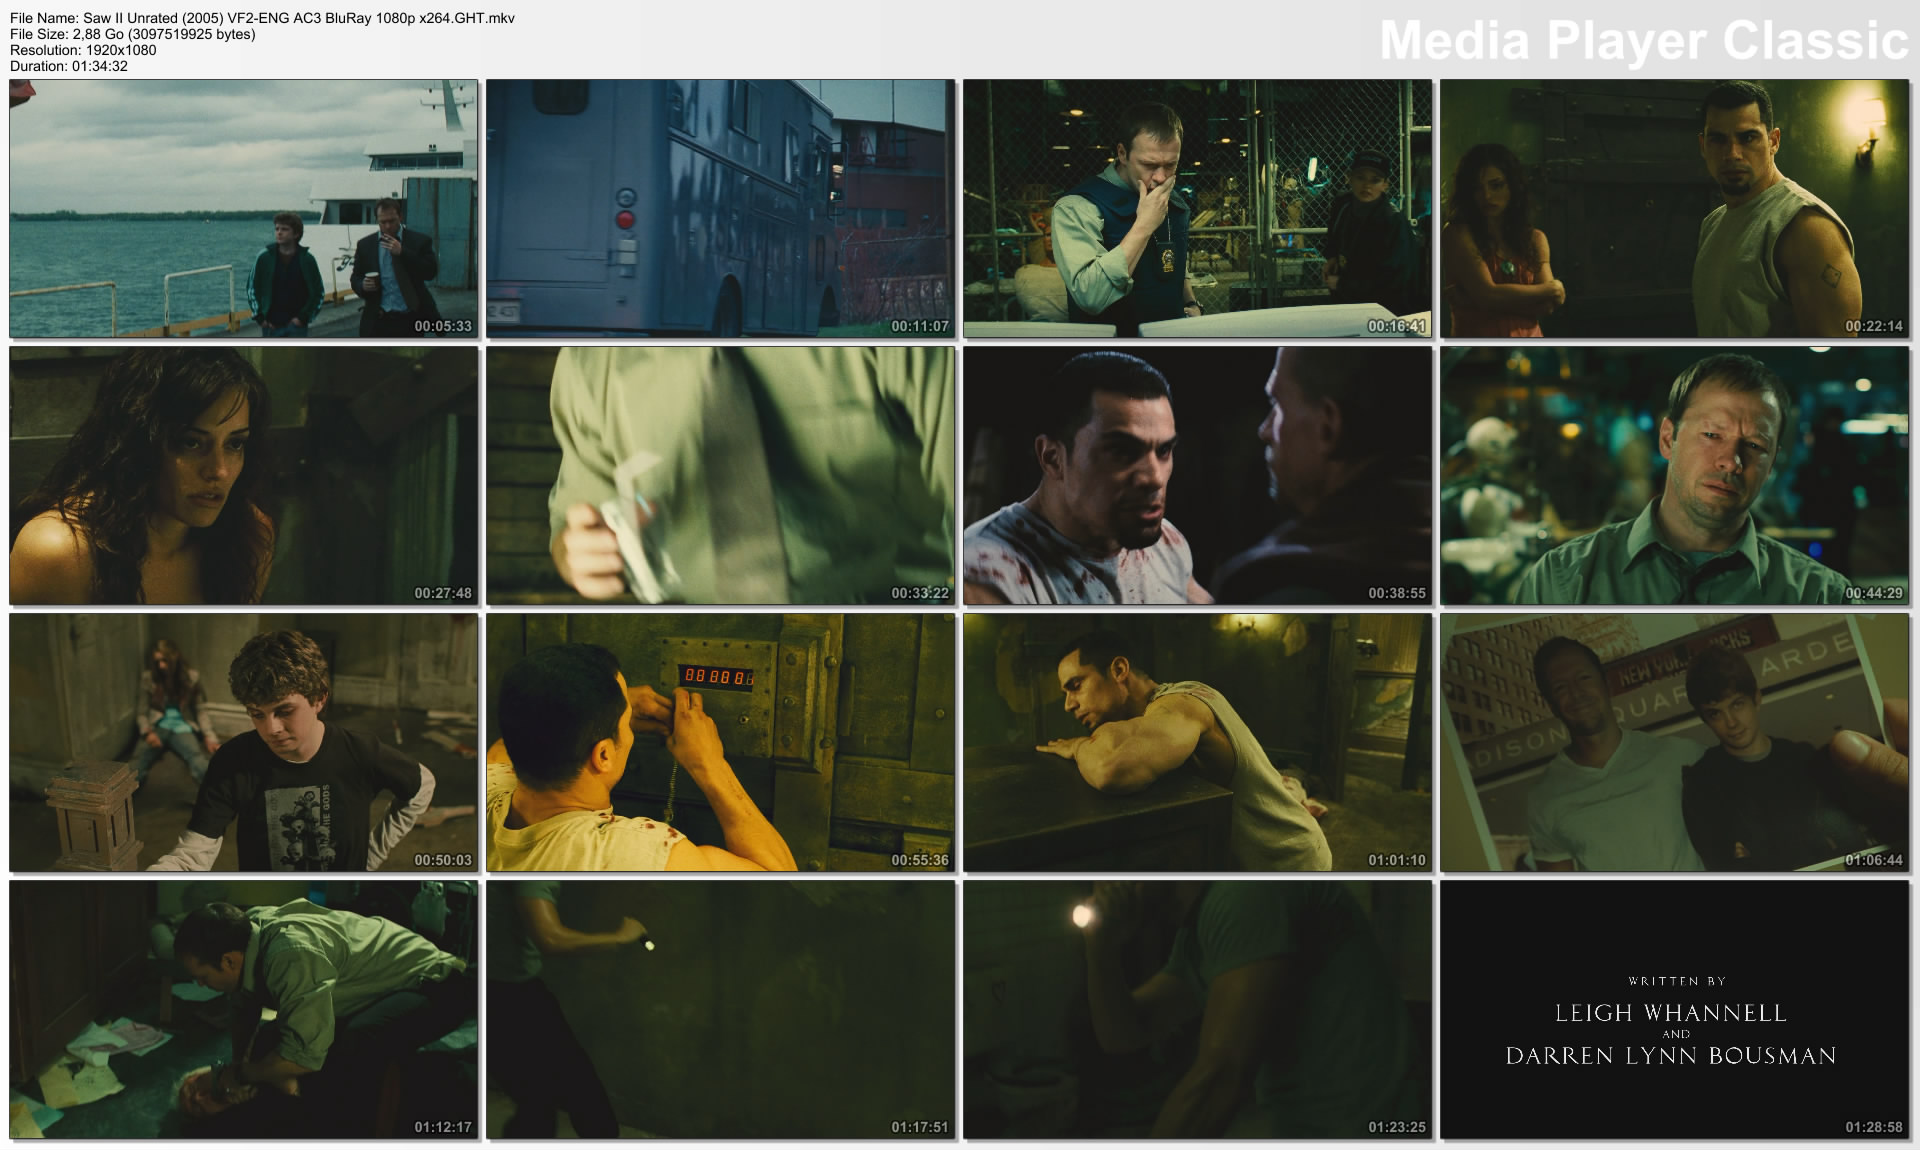 Saw II Unrated (2005) VF2-ENG AC3 BluRay 1080p x264.GHT